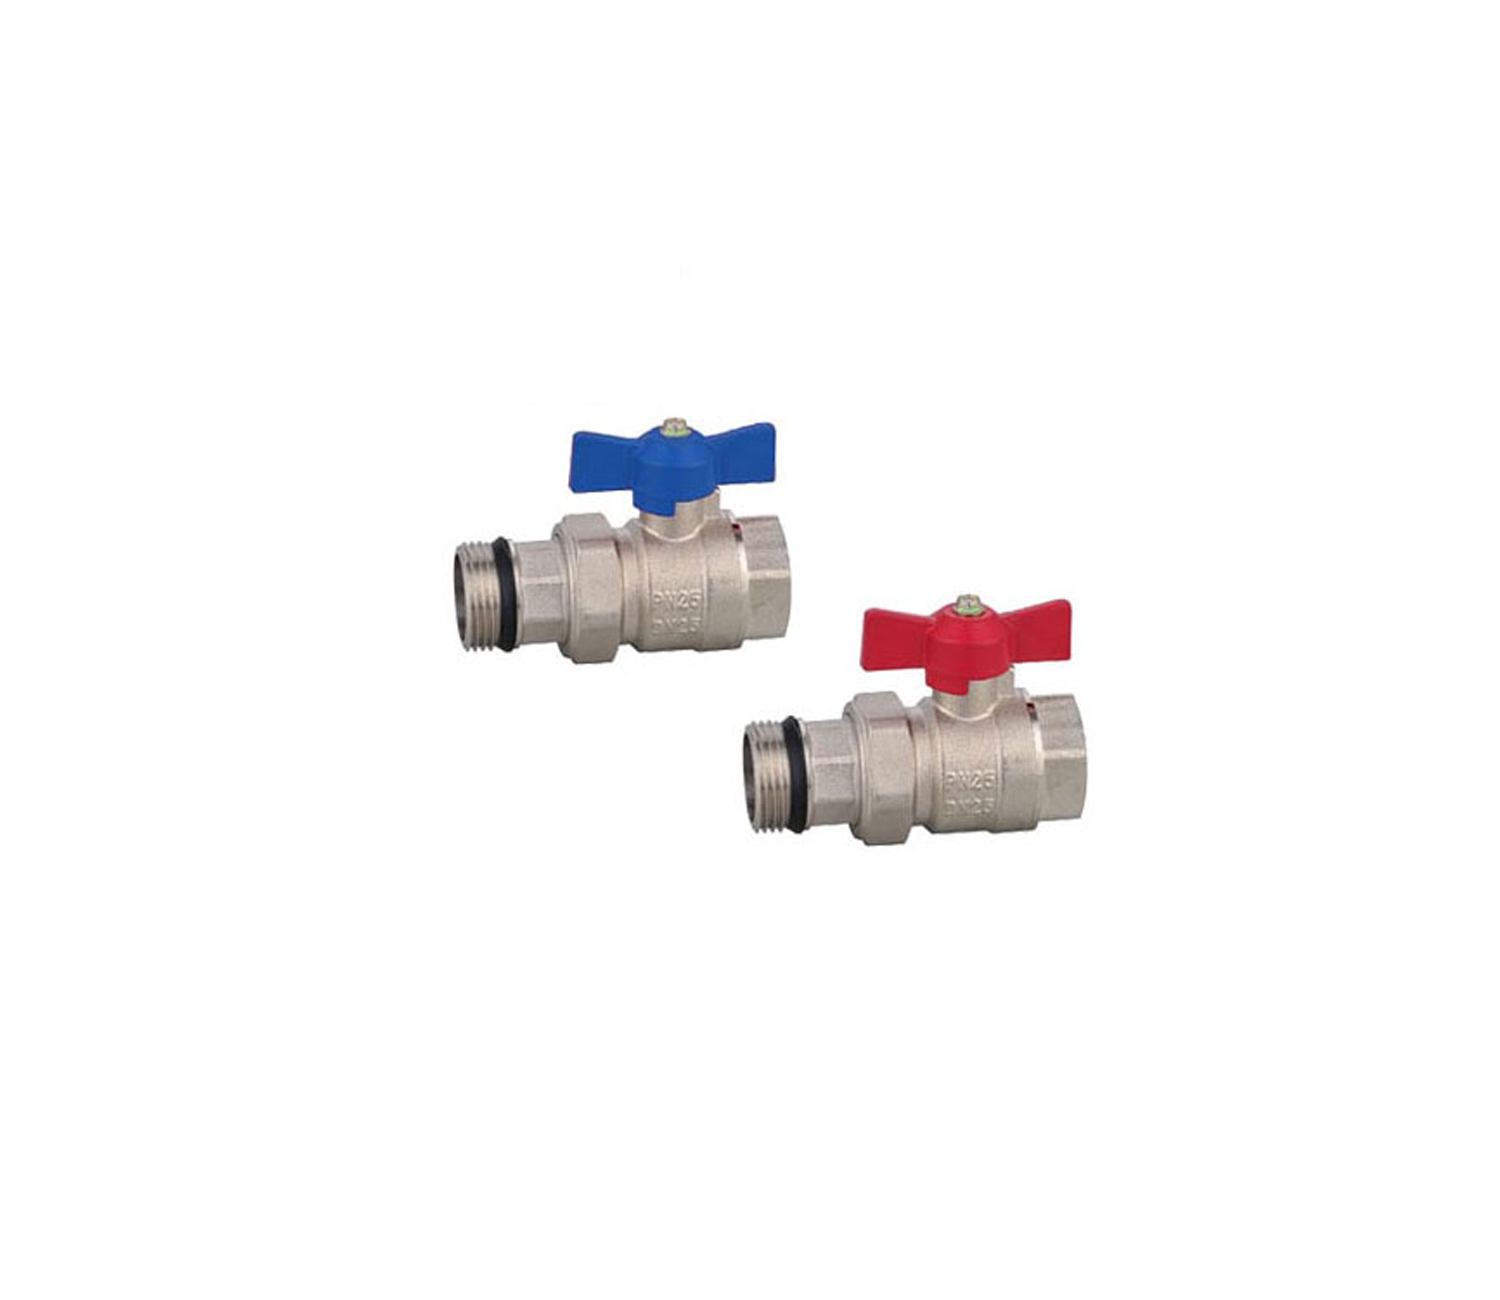 Suntask_1_Inch_Ball_Valve_set_for_Manifold_Blue_and_Red_Handle_Dublin_12.jpg